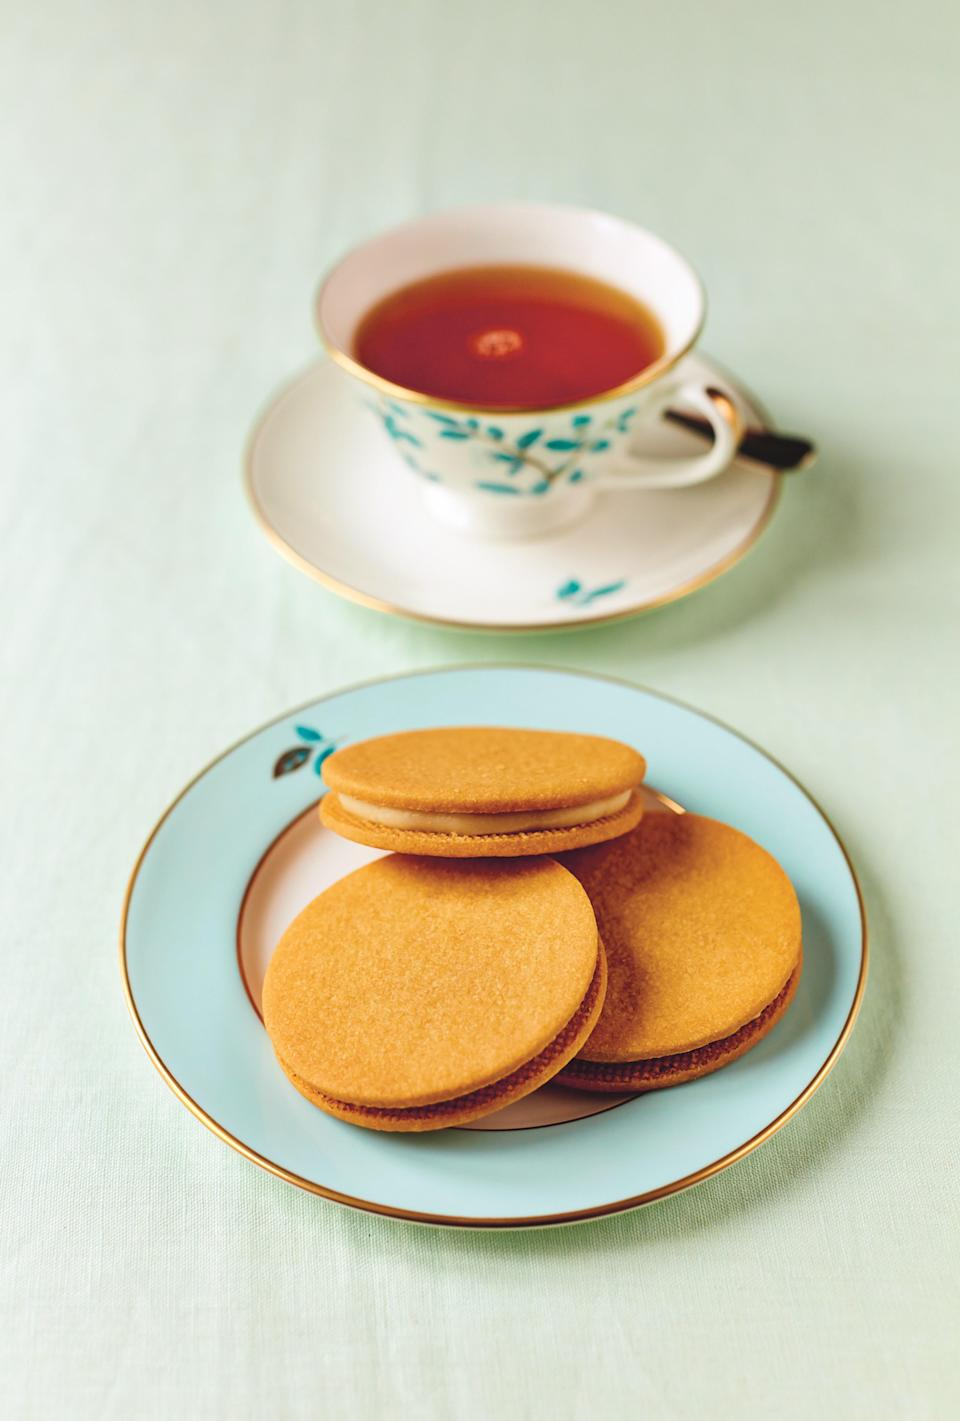 "A classic English sandwich cookie, these custard cremes have custard powder in the cookie dough, which makes them remarkably tender, delicate, and delicious. <a href=""https://www.epicurious.com/recipes/food/views/custard-creams-sandwich-cookie-fortnum-mason-tom-parker-bowles?mbid=synd_yahoo_rss"" rel=""nofollow noopener"" target=""_blank"" data-ylk=""slk:See recipe."" class=""link rapid-noclick-resp"">See recipe.</a>"